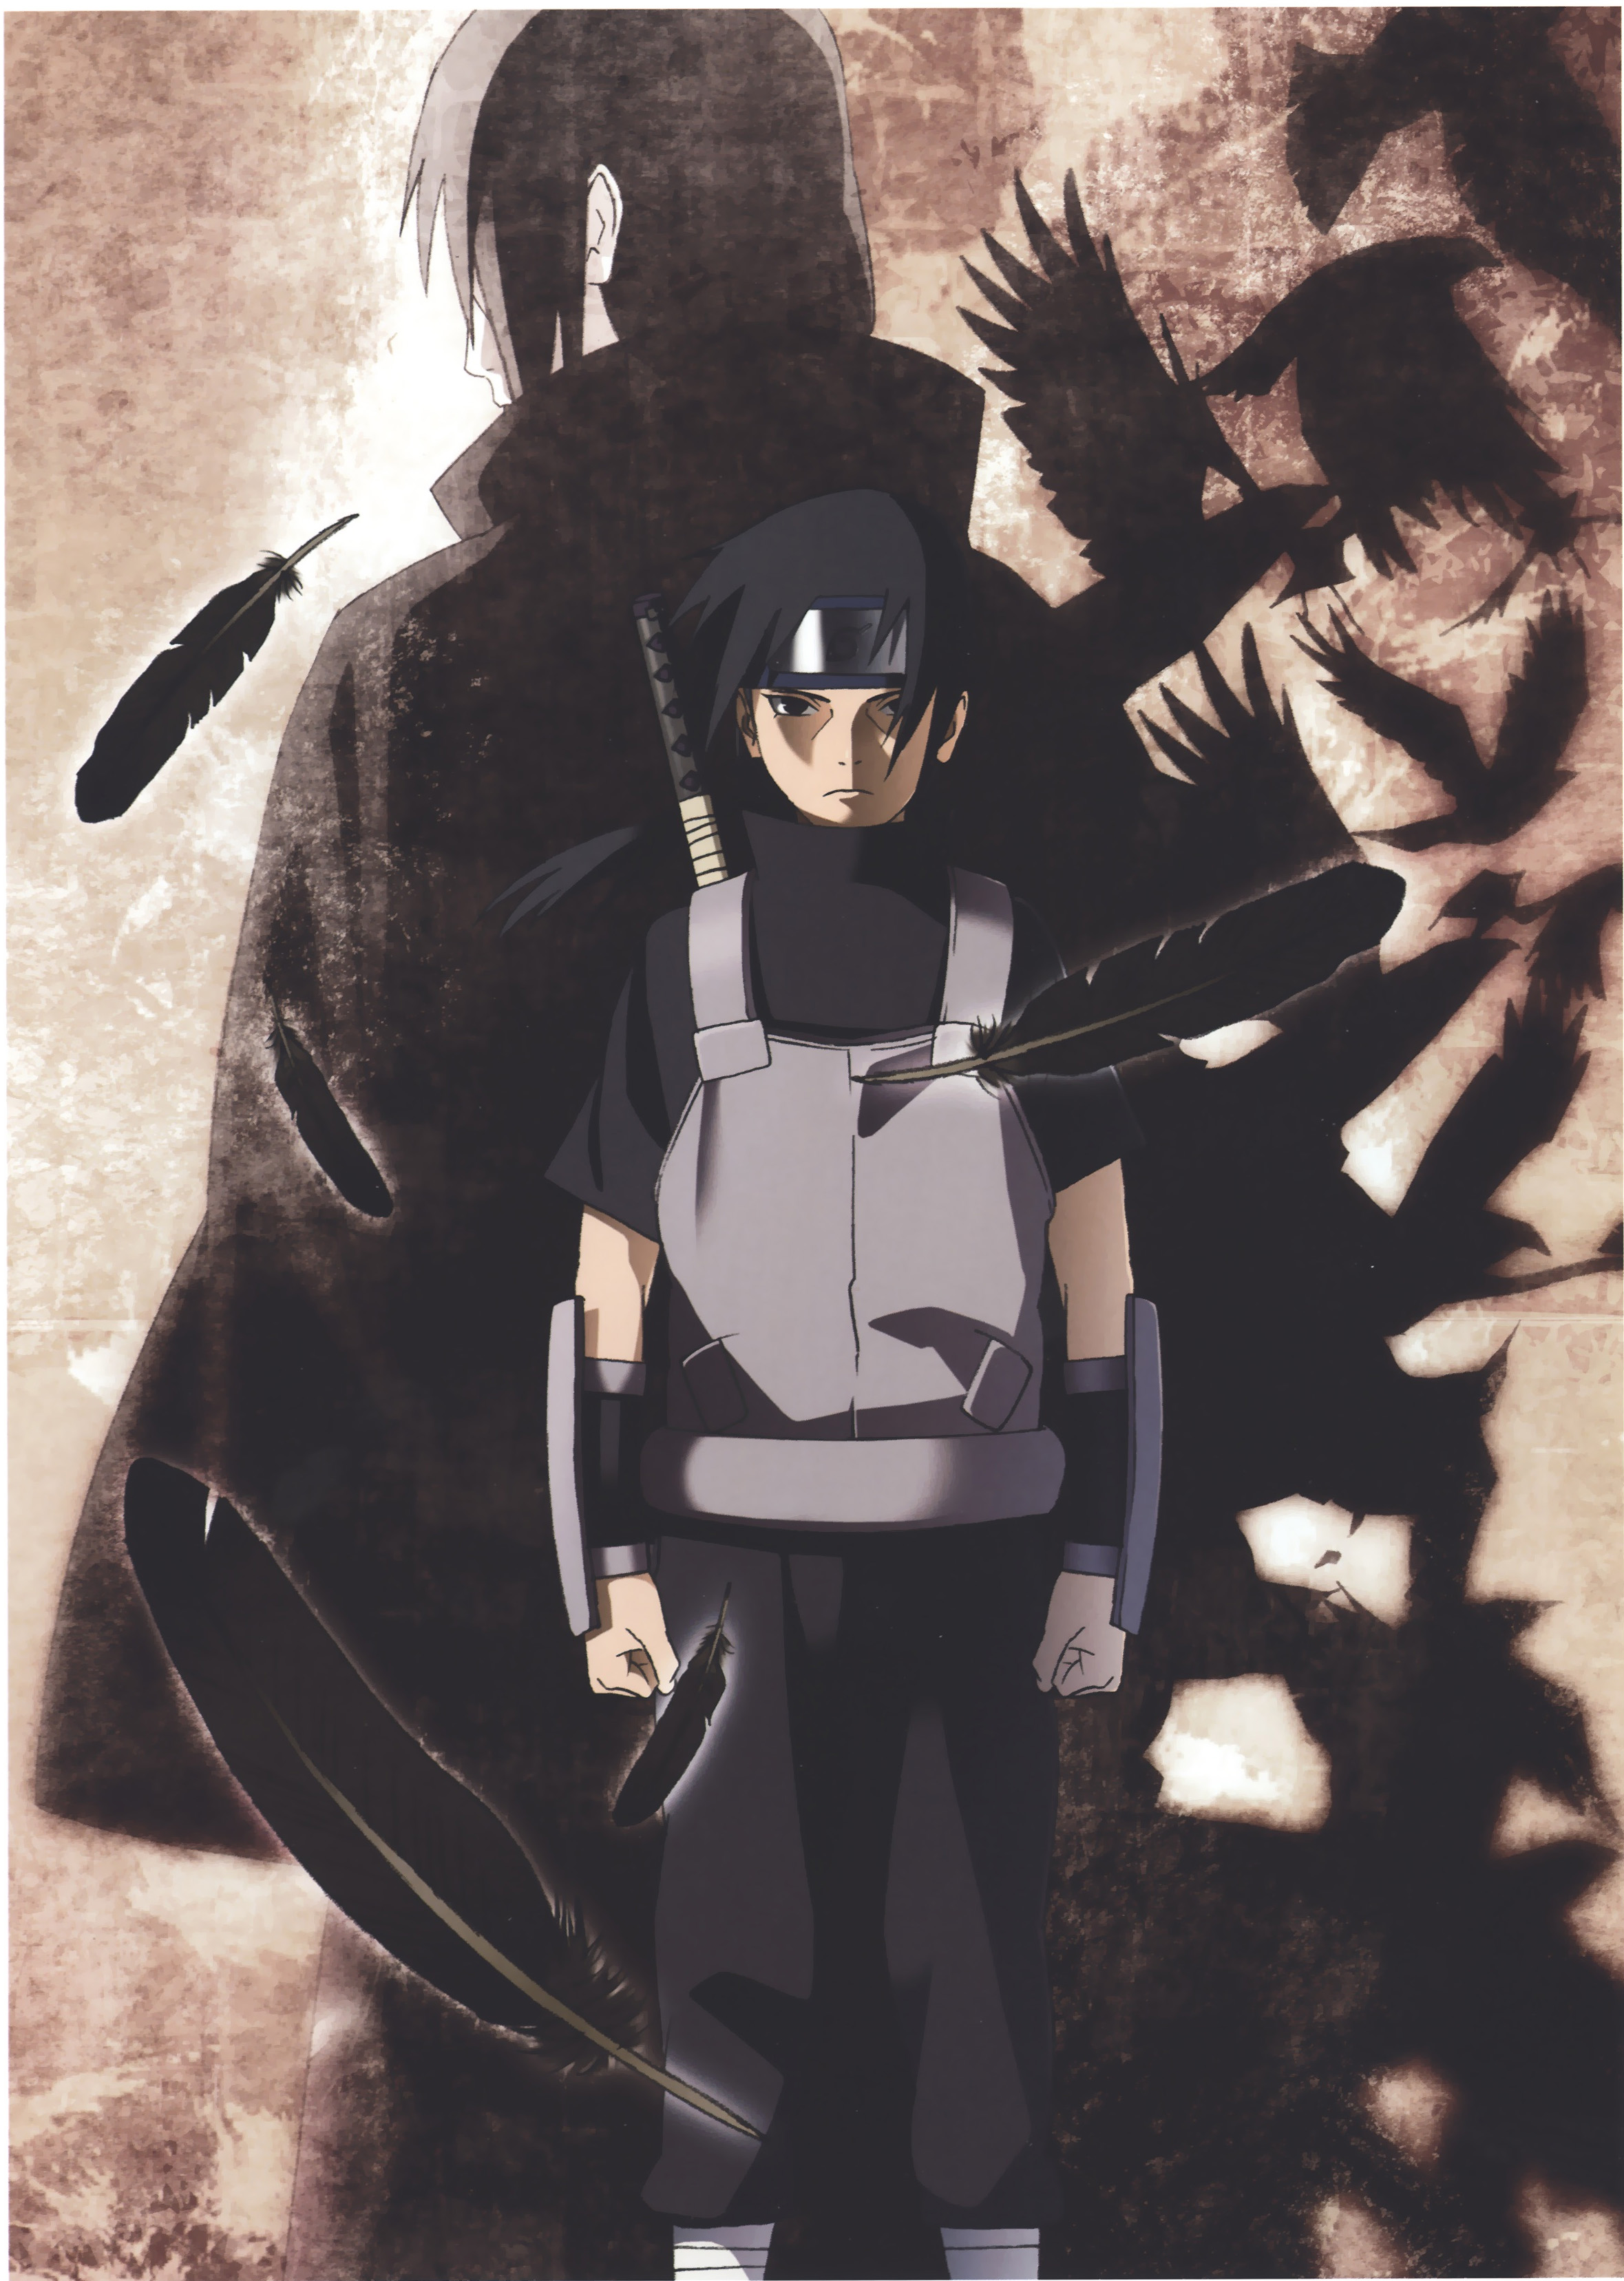 Akatsuki and ANBU Itachi